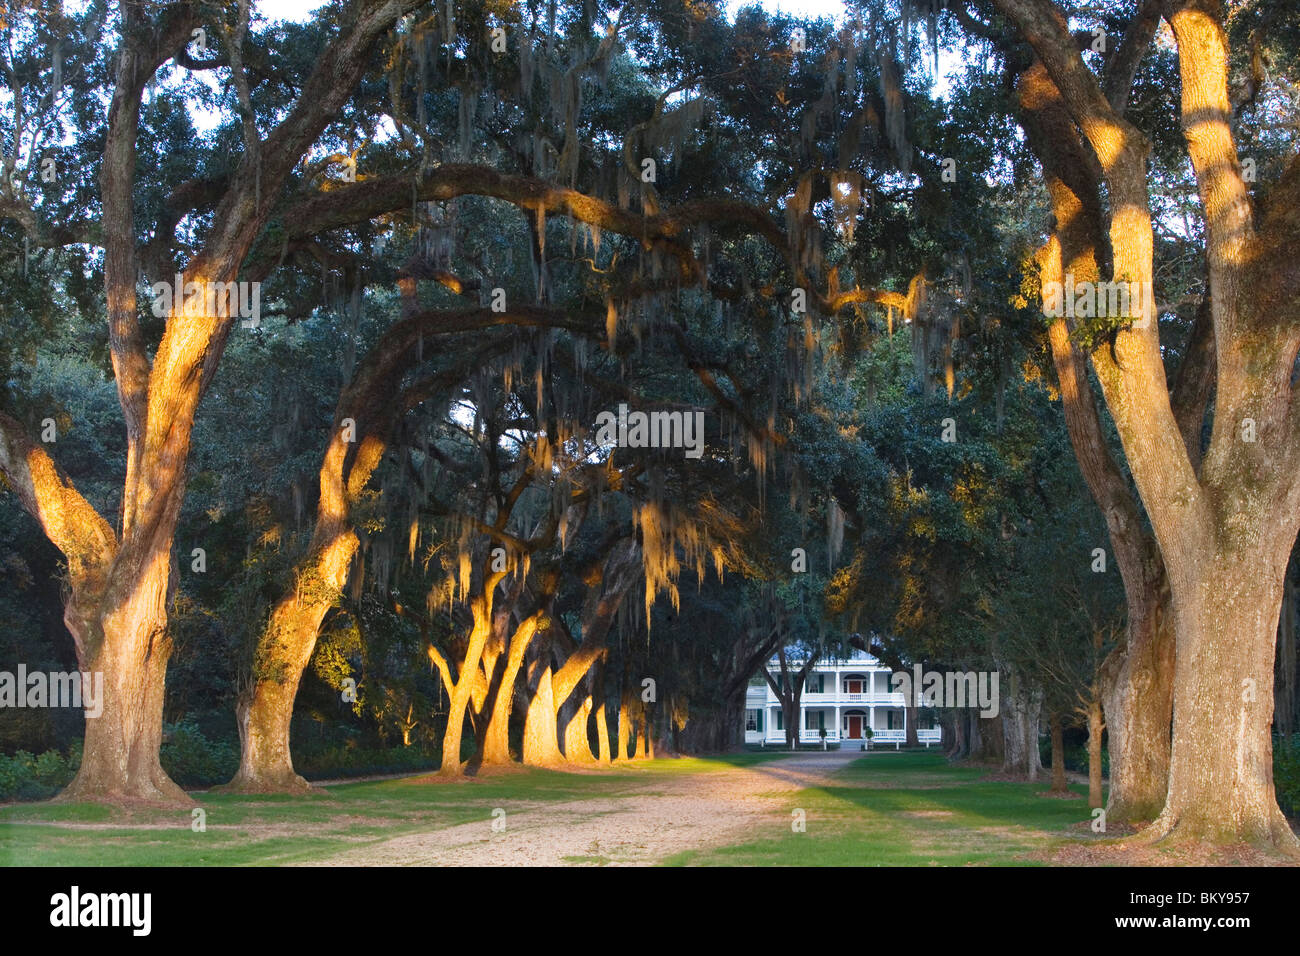 A Louisiana dream: an old oak alley leads towards Rosedown Plantation, St. Francisville, Louisiana, USA - Stock Image